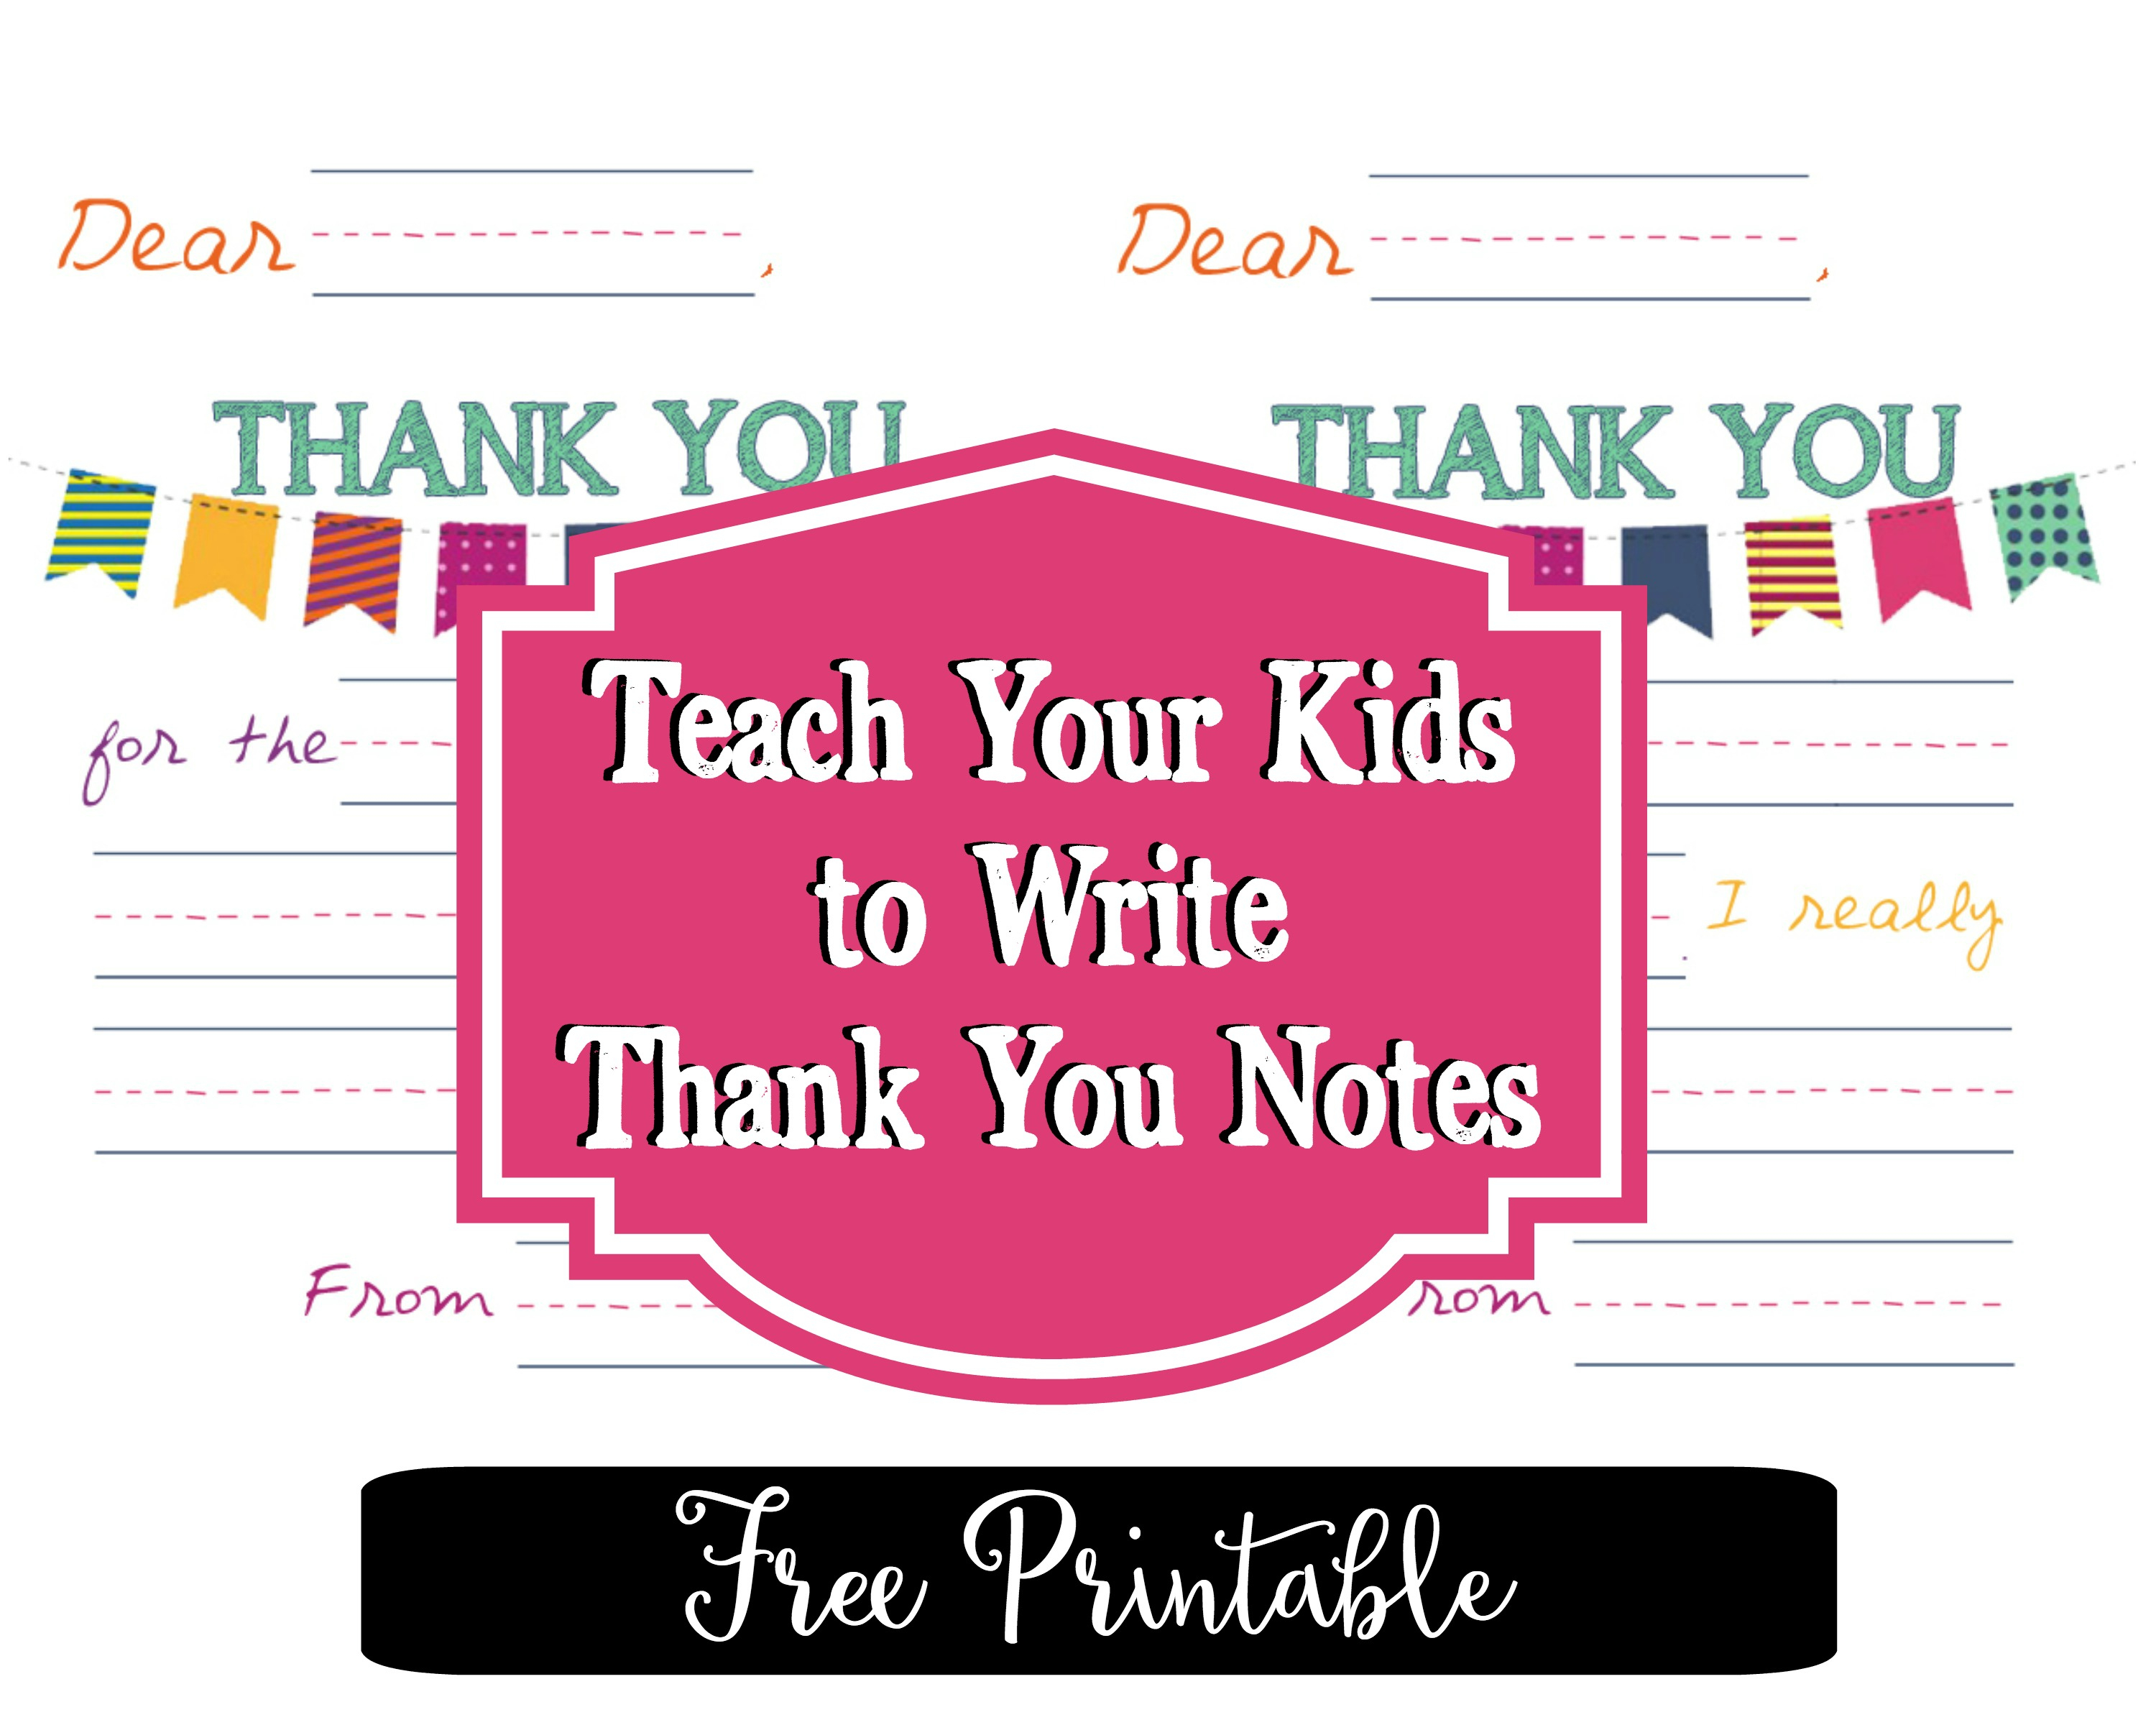 Printable Thank You Notes That Will Make Your Kids Feel Like Rockstars - Free Printable Thank You